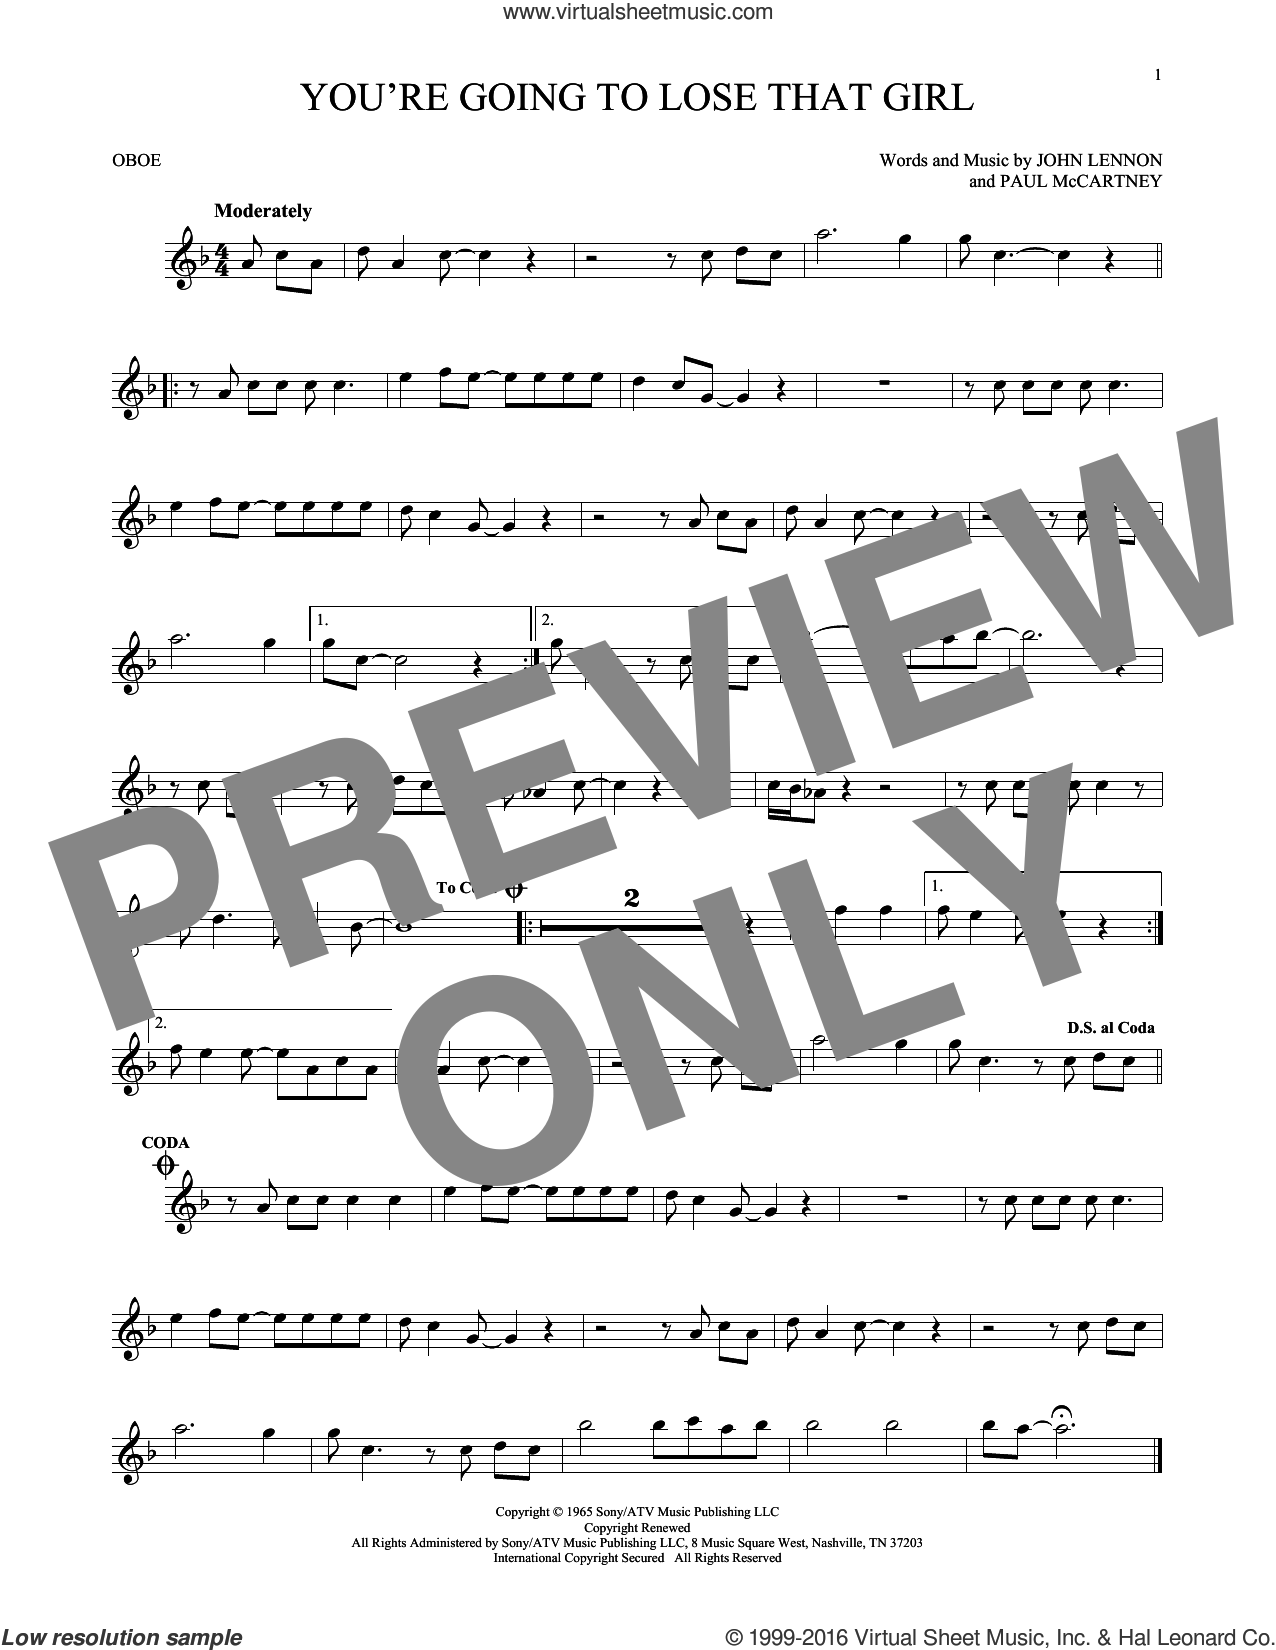 You're Going To Lose That Girl sheet music for oboe solo by The Beatles, John Lennon and Paul McCartney, intermediate oboe. Score Image Preview.